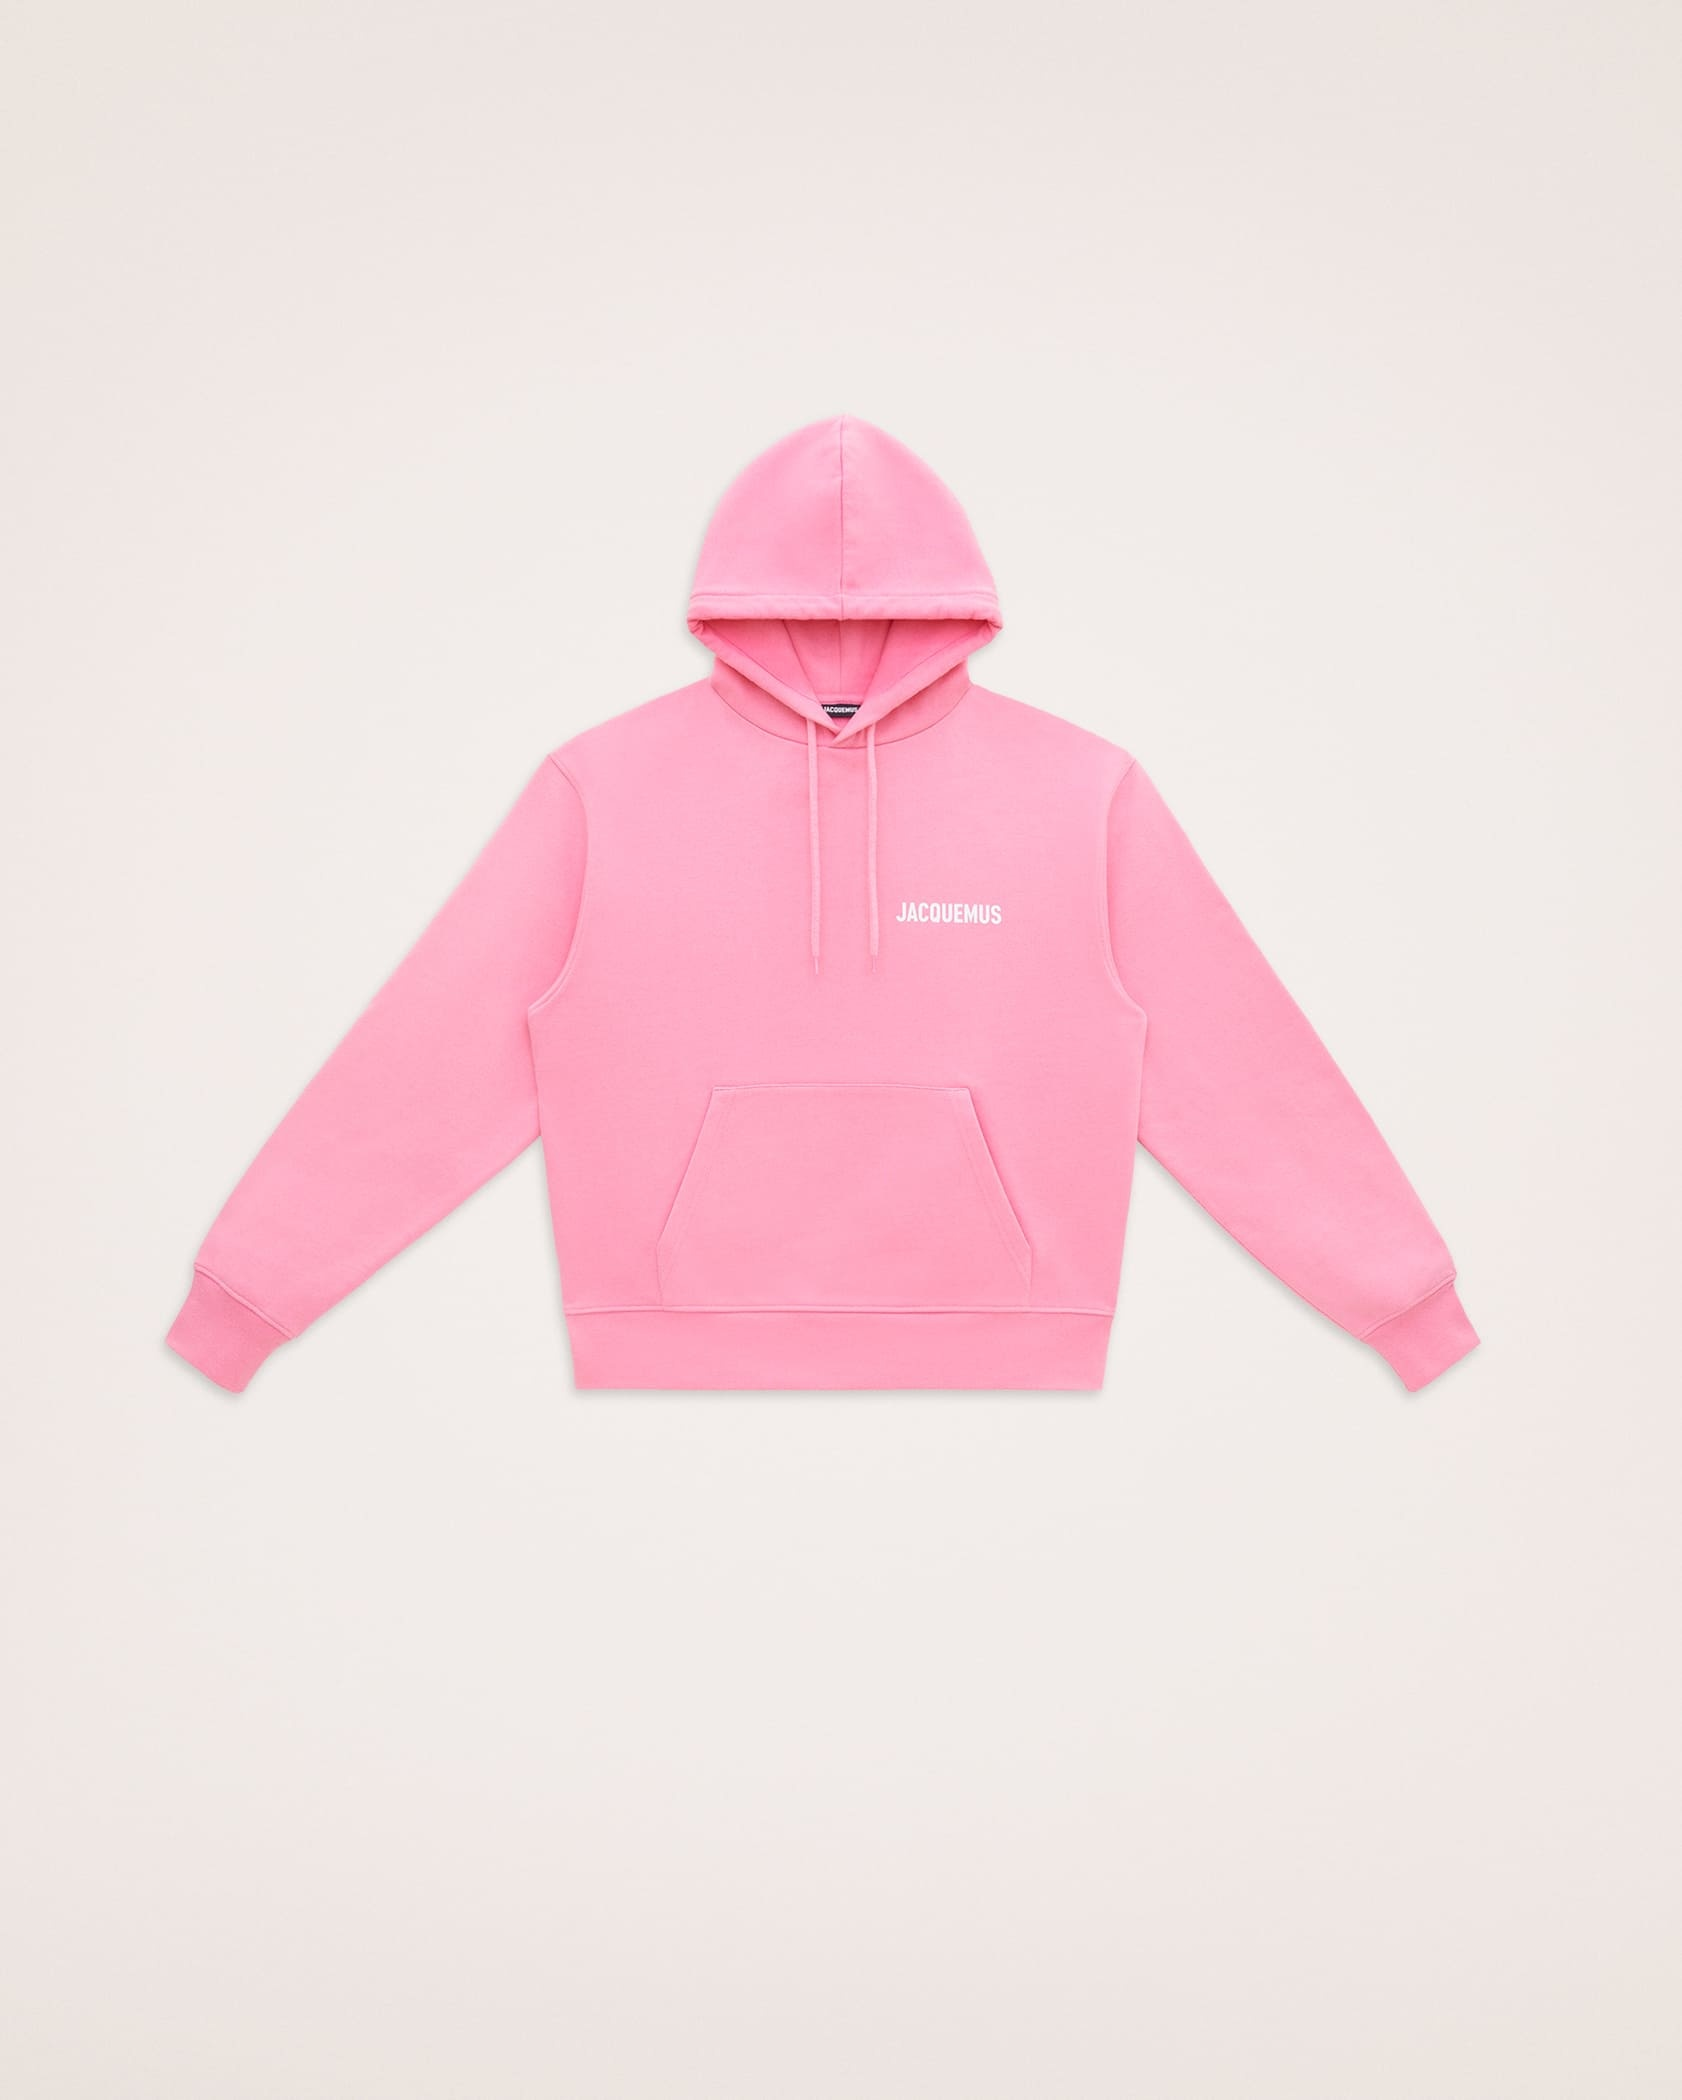 le_sweat_jacquemus_pink_015